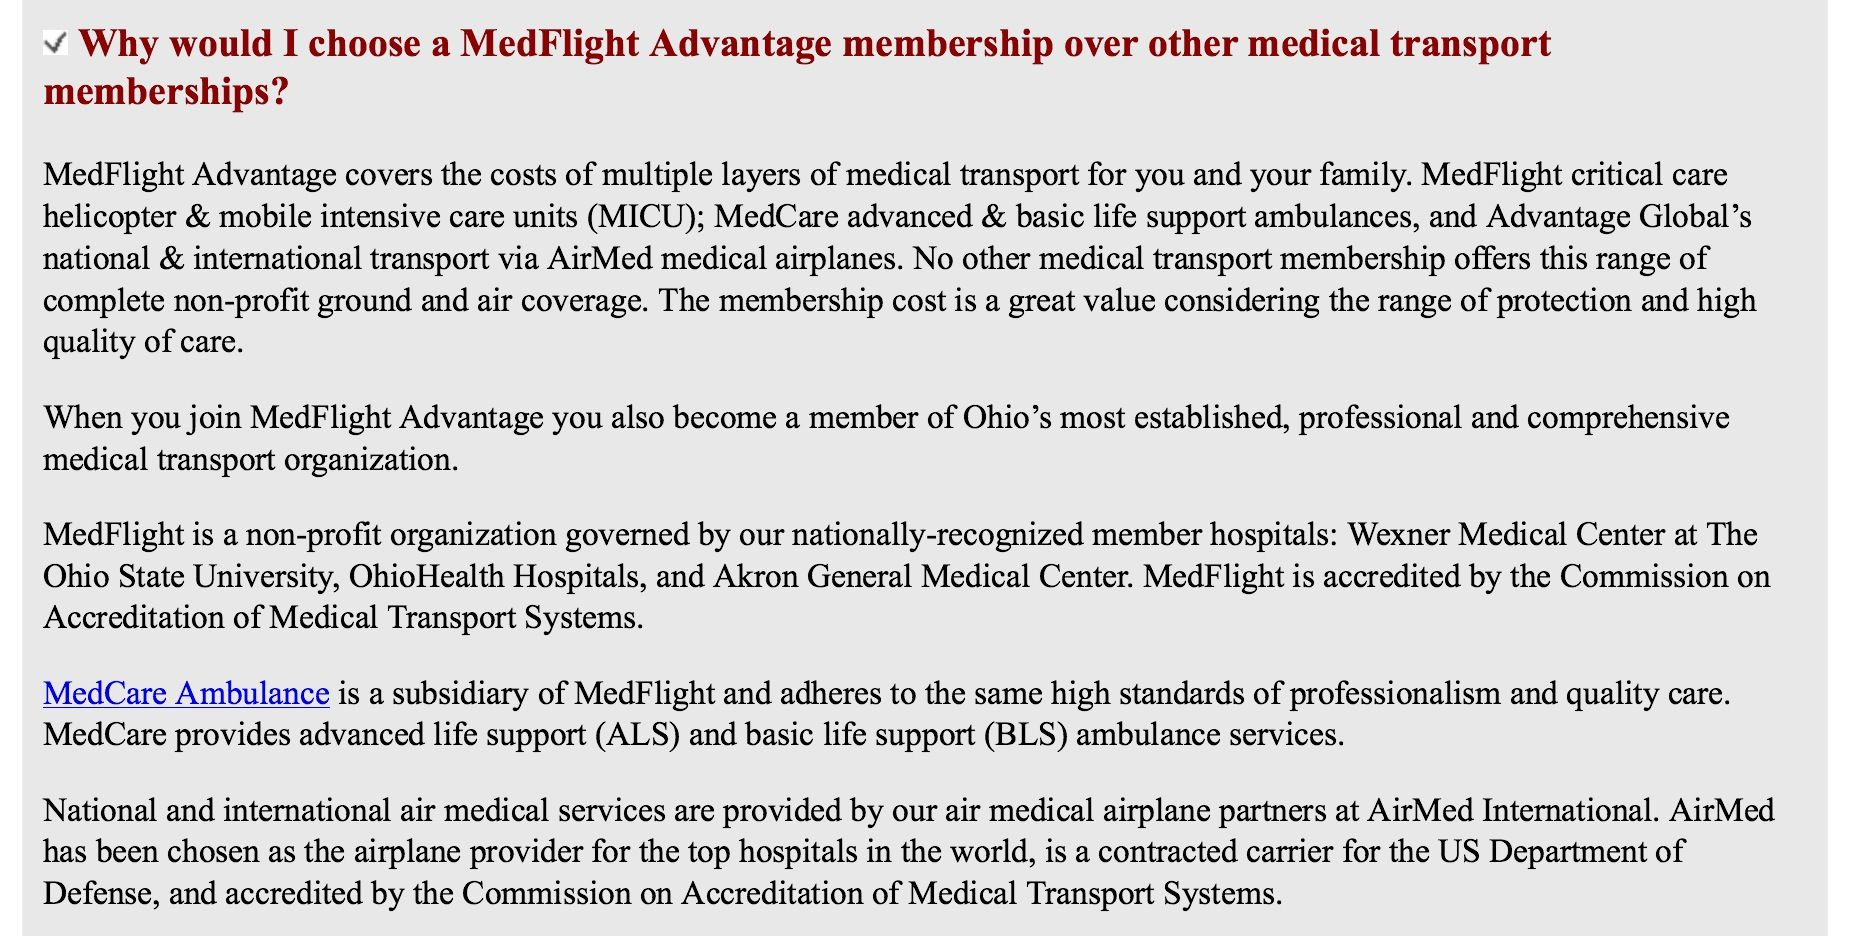 Why Is Medflight Advantage Better Than Other Medical Transport Memberships Basic Life Support How To Find Out Intensive Care Unit